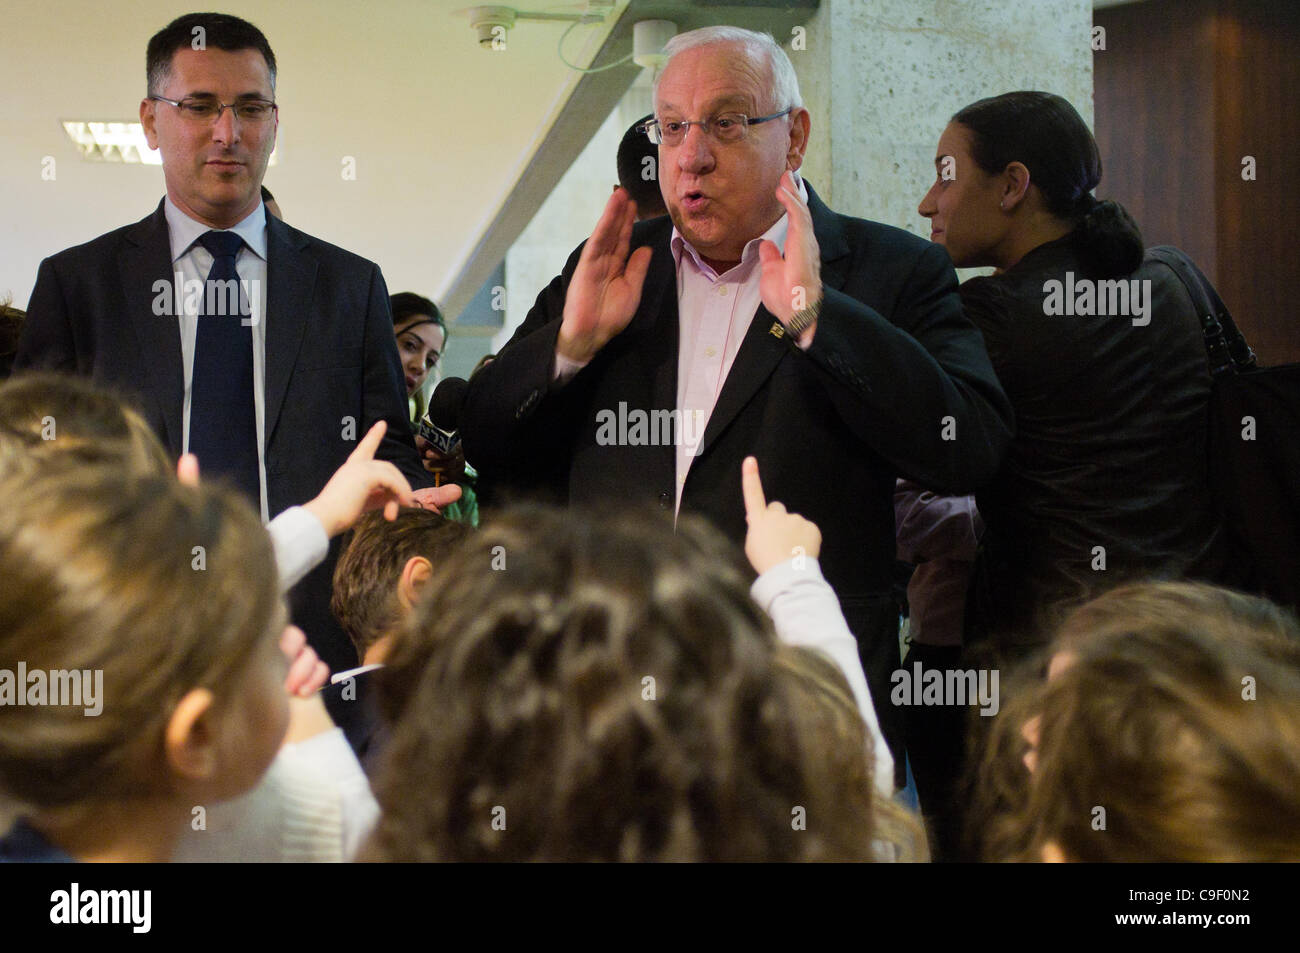 Speaker of the Knesset Reuven Rubi Rivlin (R) and Minister of Education Gideon Saar (L) interact with kindergarten - Stock Image